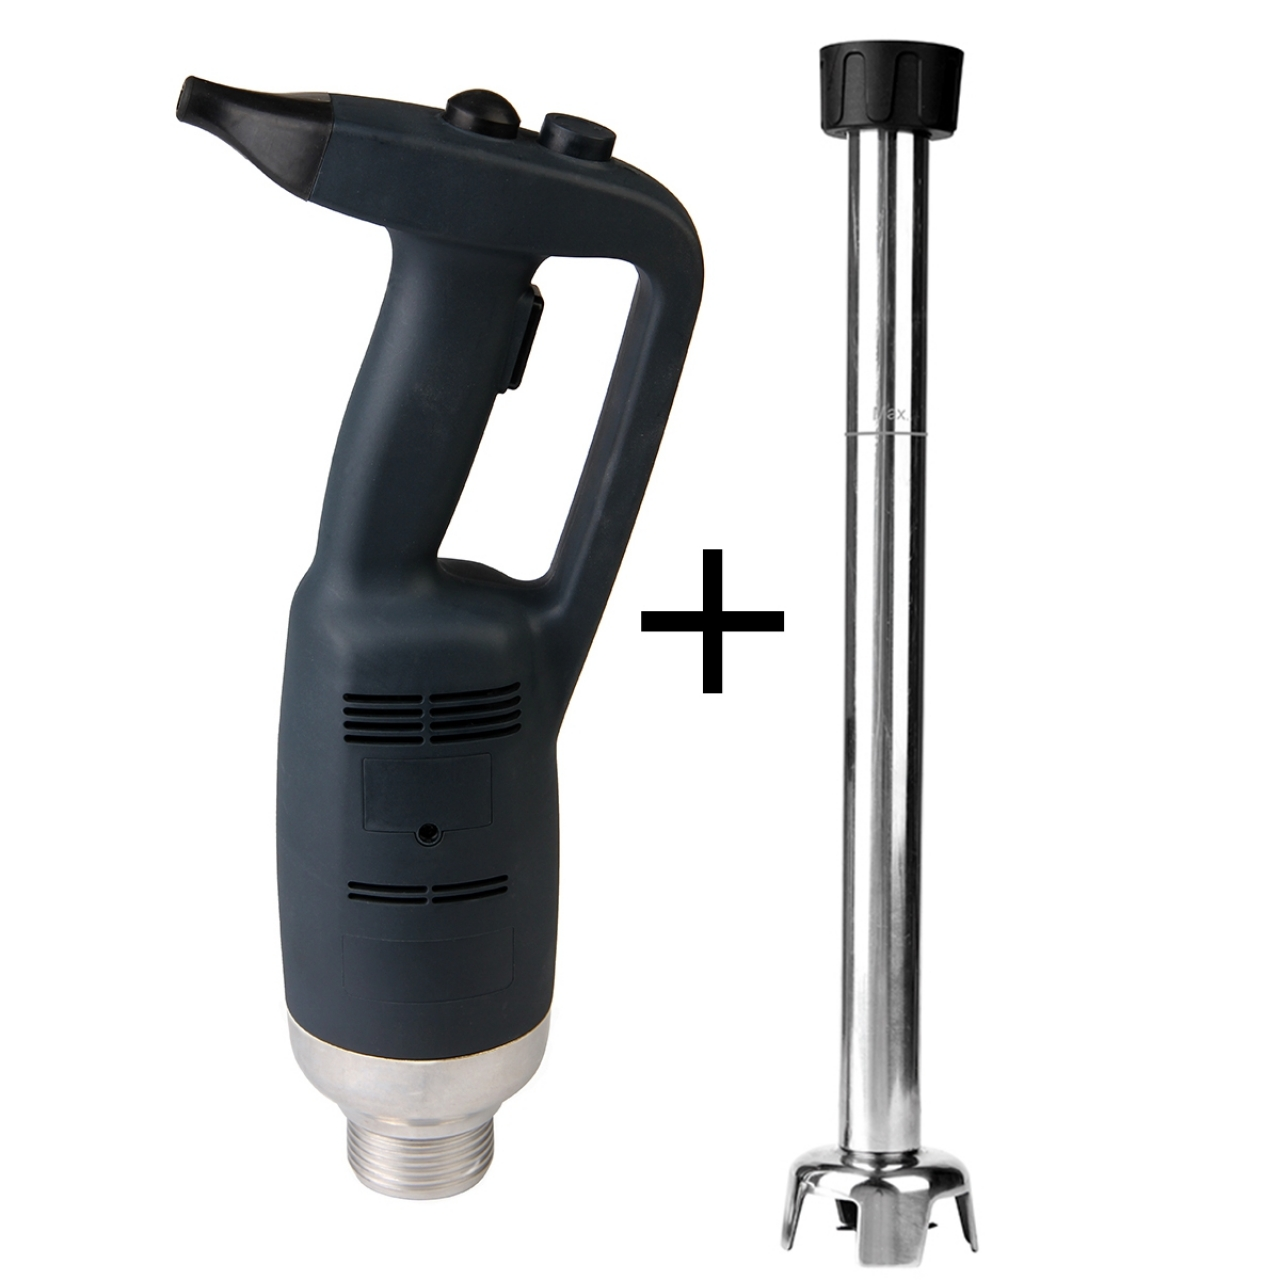 Hand-held blender with power regulator 500 mm